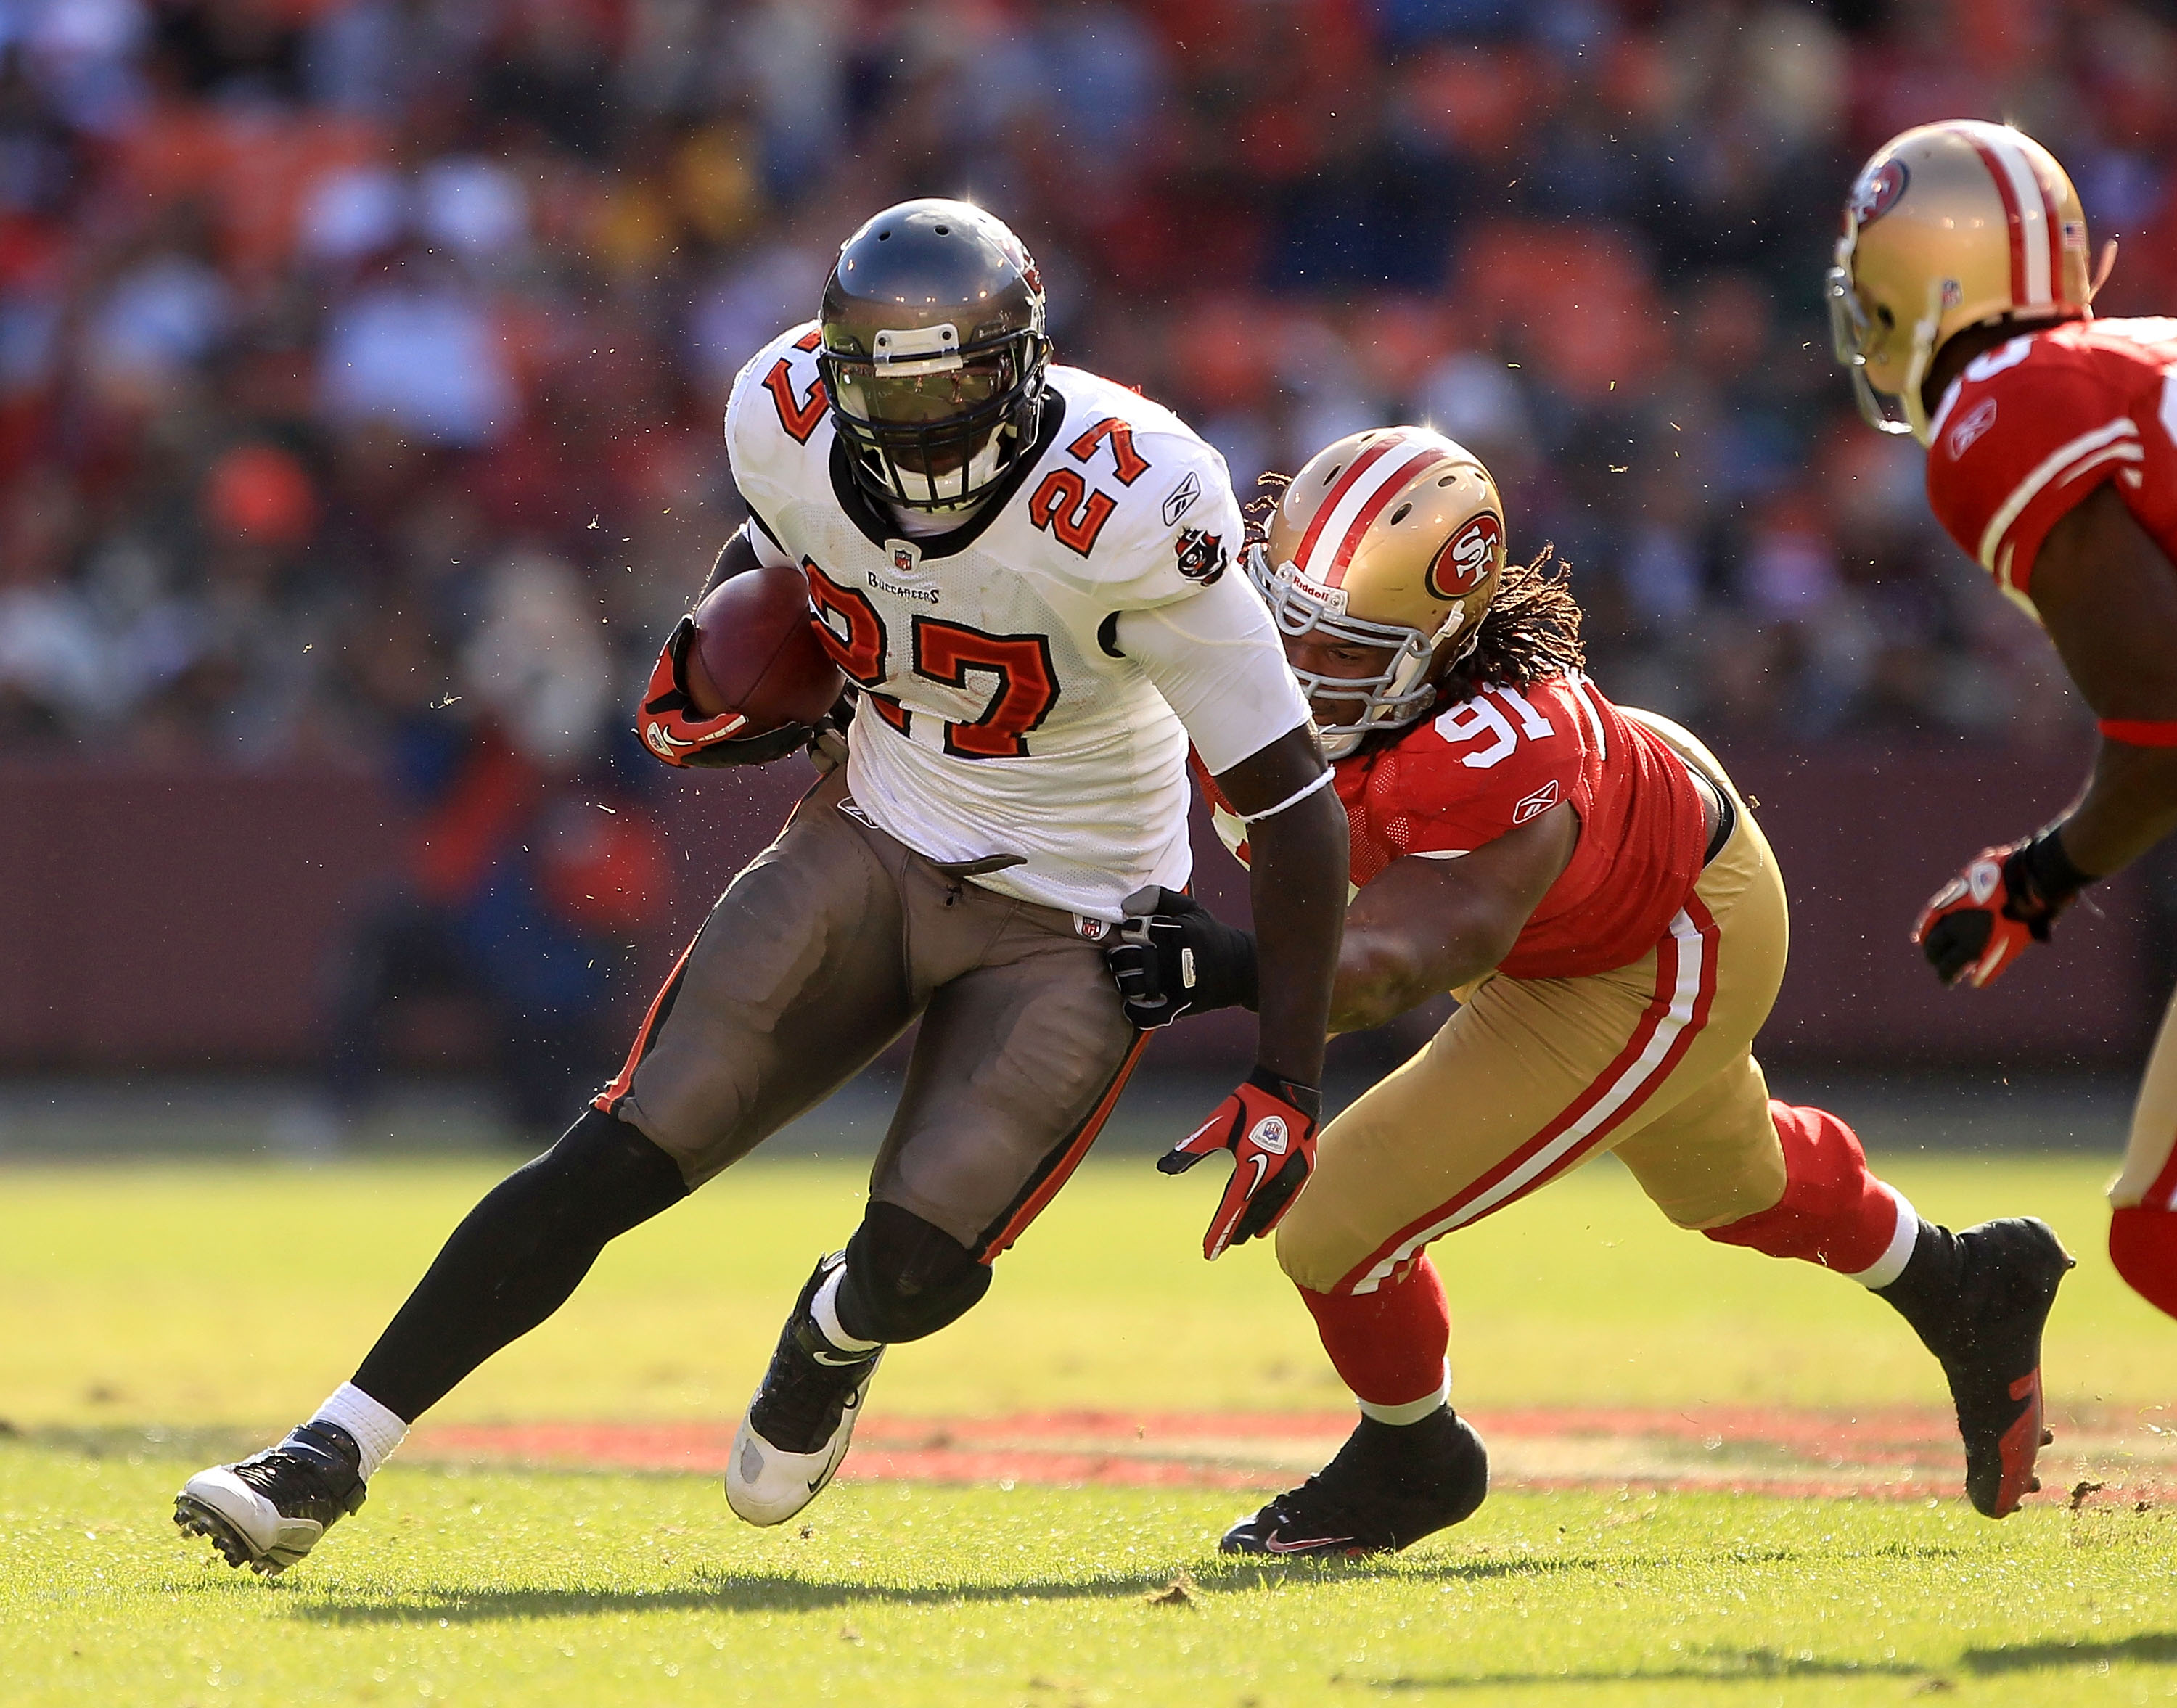 SAN FRANCISCO - NOVEMBER 21:  LeGarrette Blount #27 of the Tampa Bay Buccaneers is tackled by the Ray McDonald #91 of the San Francisco 49ers at Candlestick Park on November 21, 2010 in San Francisco, California.  (Photo by Ezra Shaw/Getty Images)